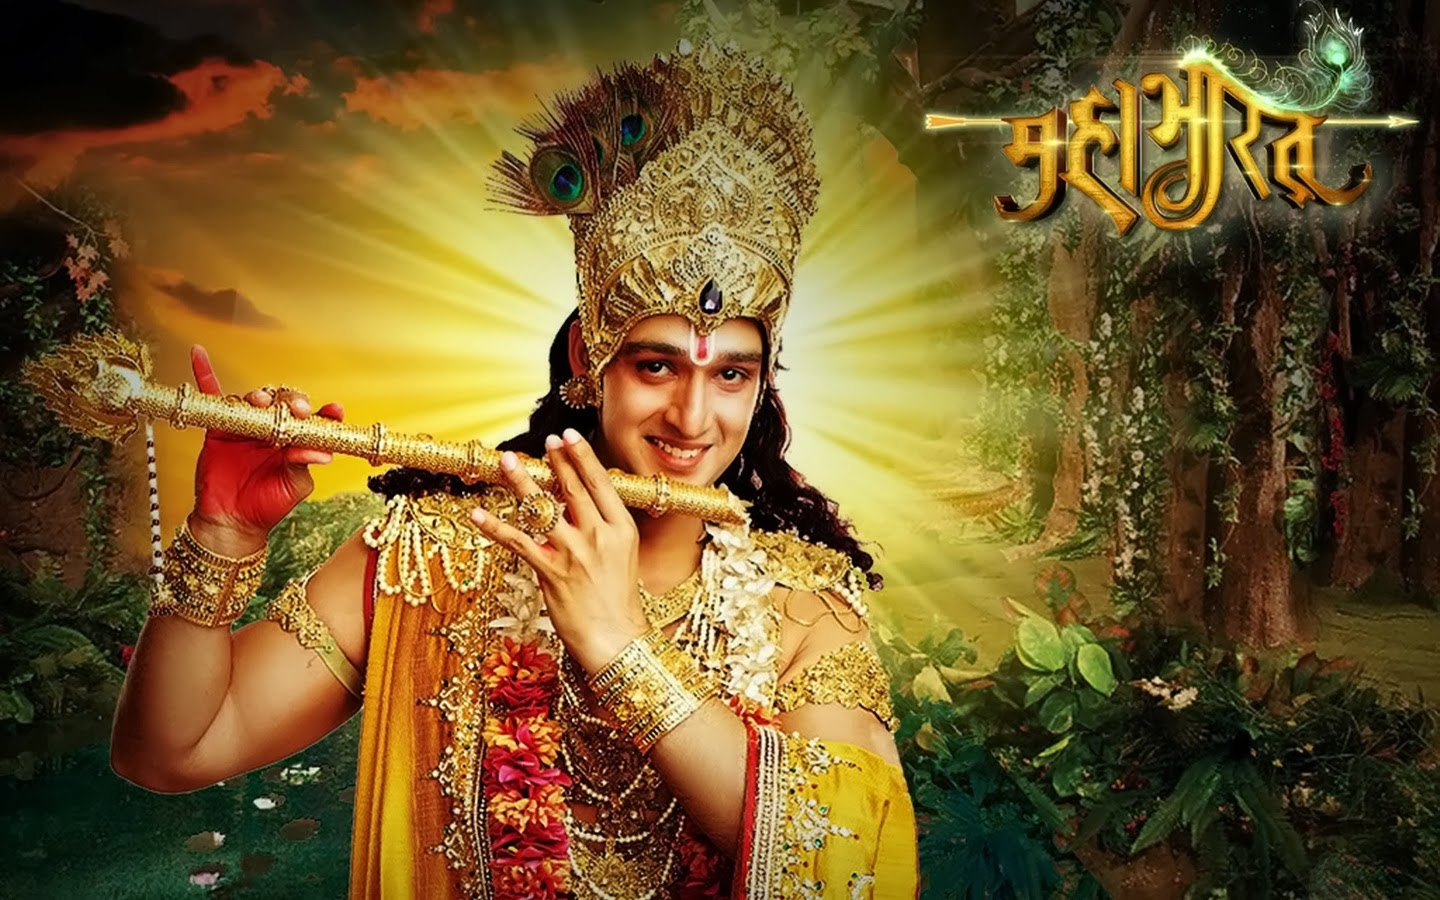 Download Shree Krishna Wallpaper Full Size Gallery | 1440 x 900 jpeg 299kB